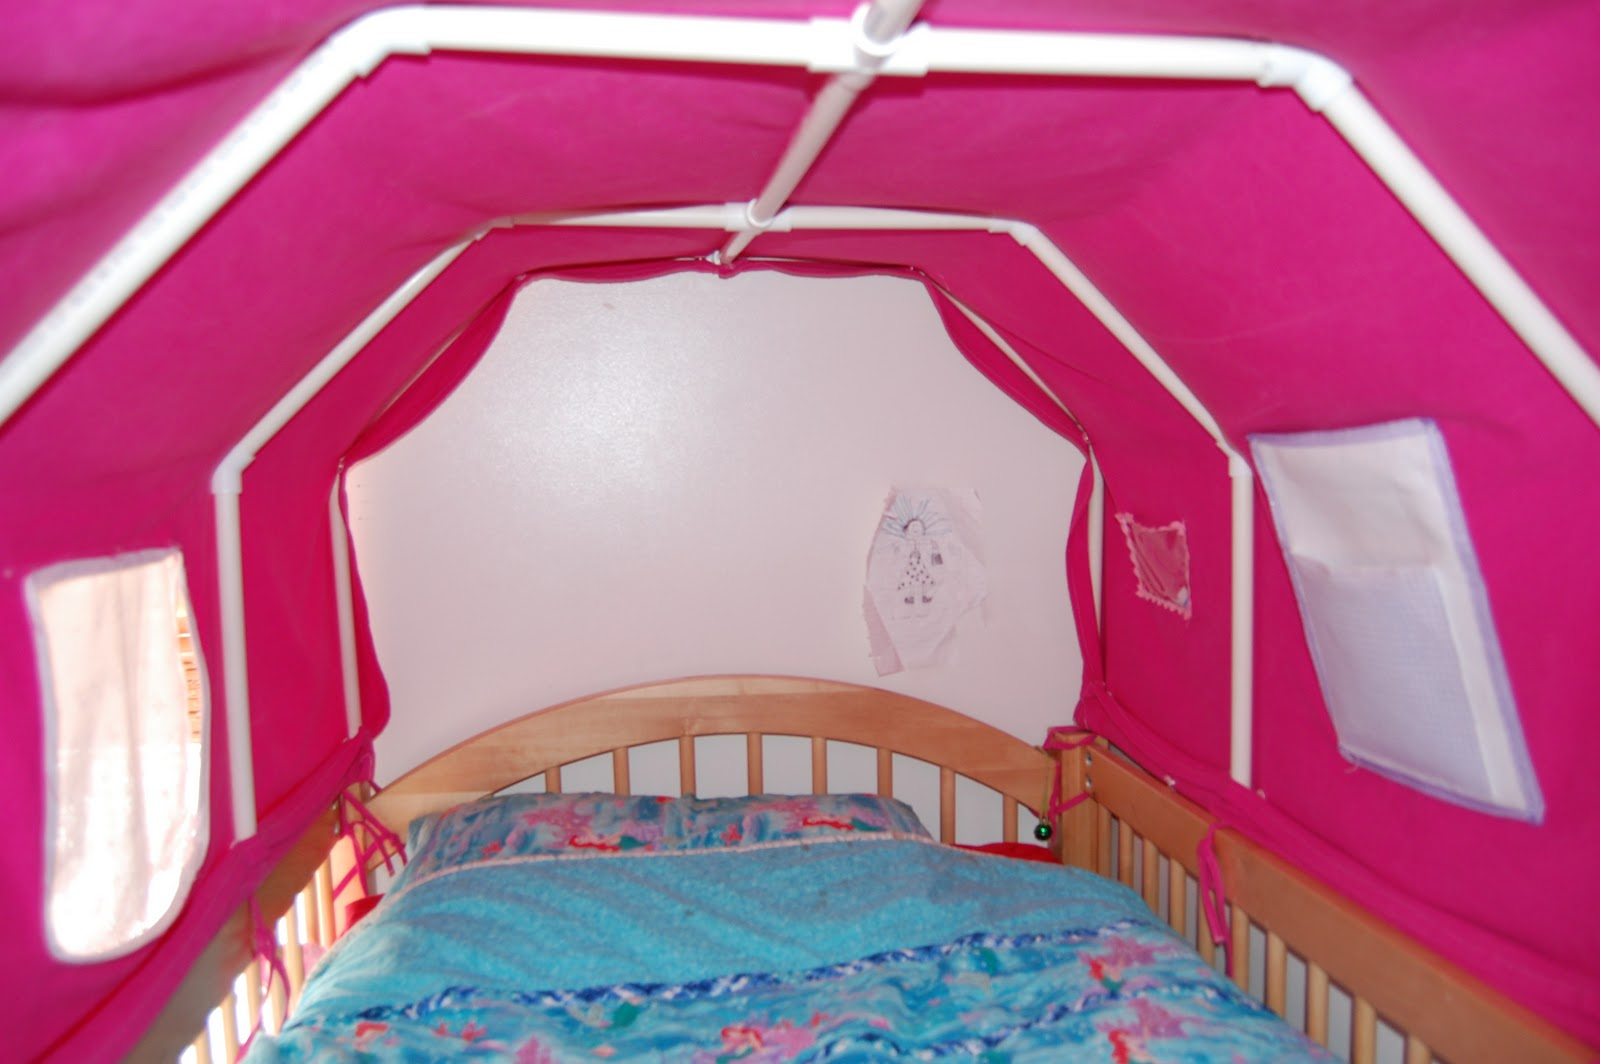 Everyoneu0027s Excited and Confused Pictures of the Top Bunk Bed Tent and Paltry Instructions & Everyoneu0027s Excited and Confused: Pictures of the Top Bunk Bed Tent ...